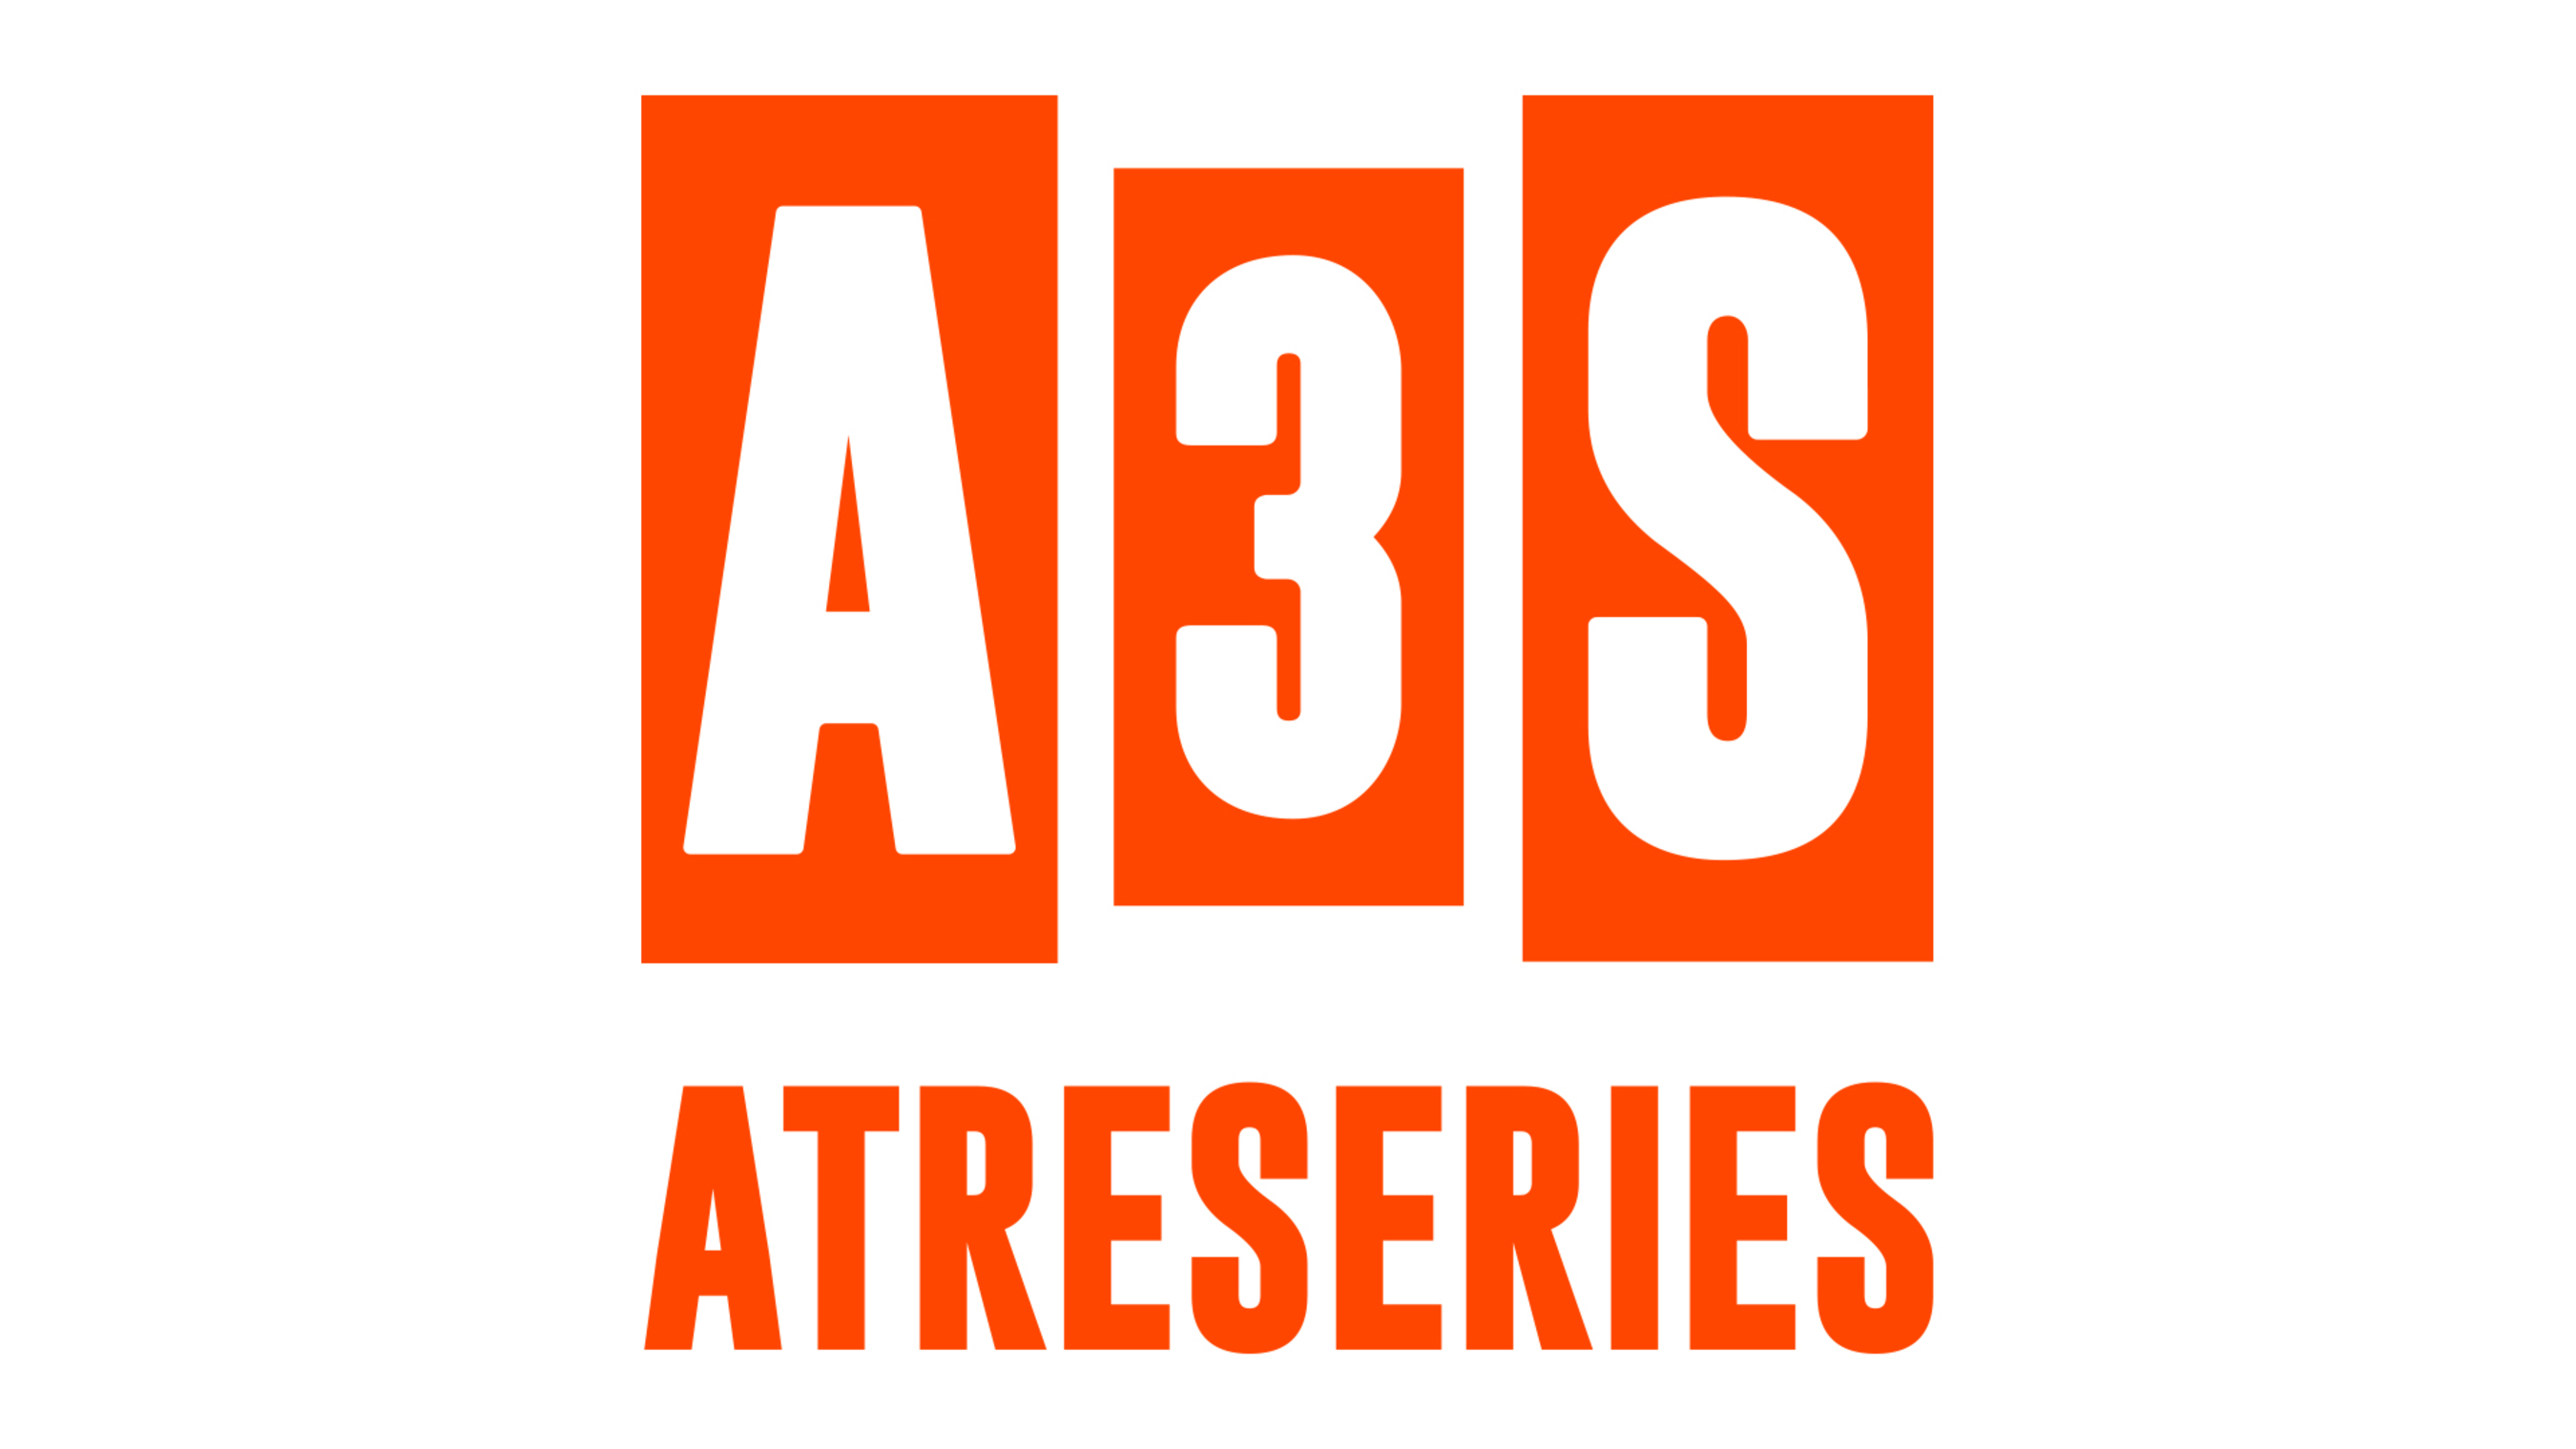 ATRES SERIES Launches on DIRECTV Mas Platform